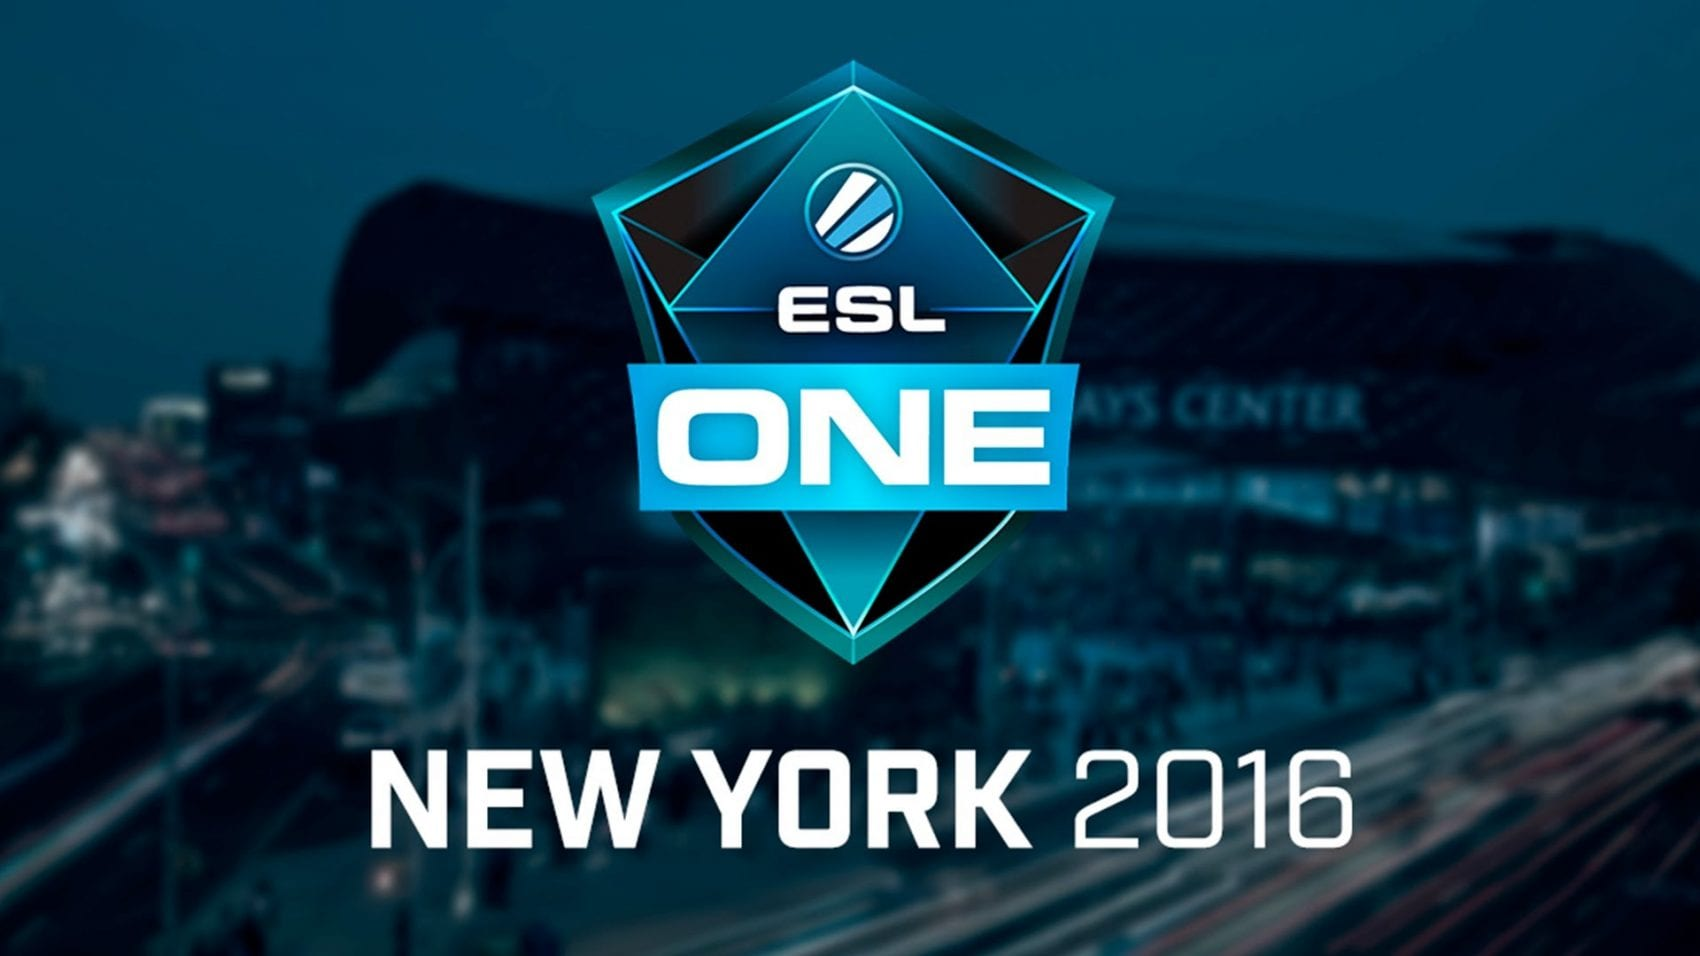 NEWS – ESL One New York 2016